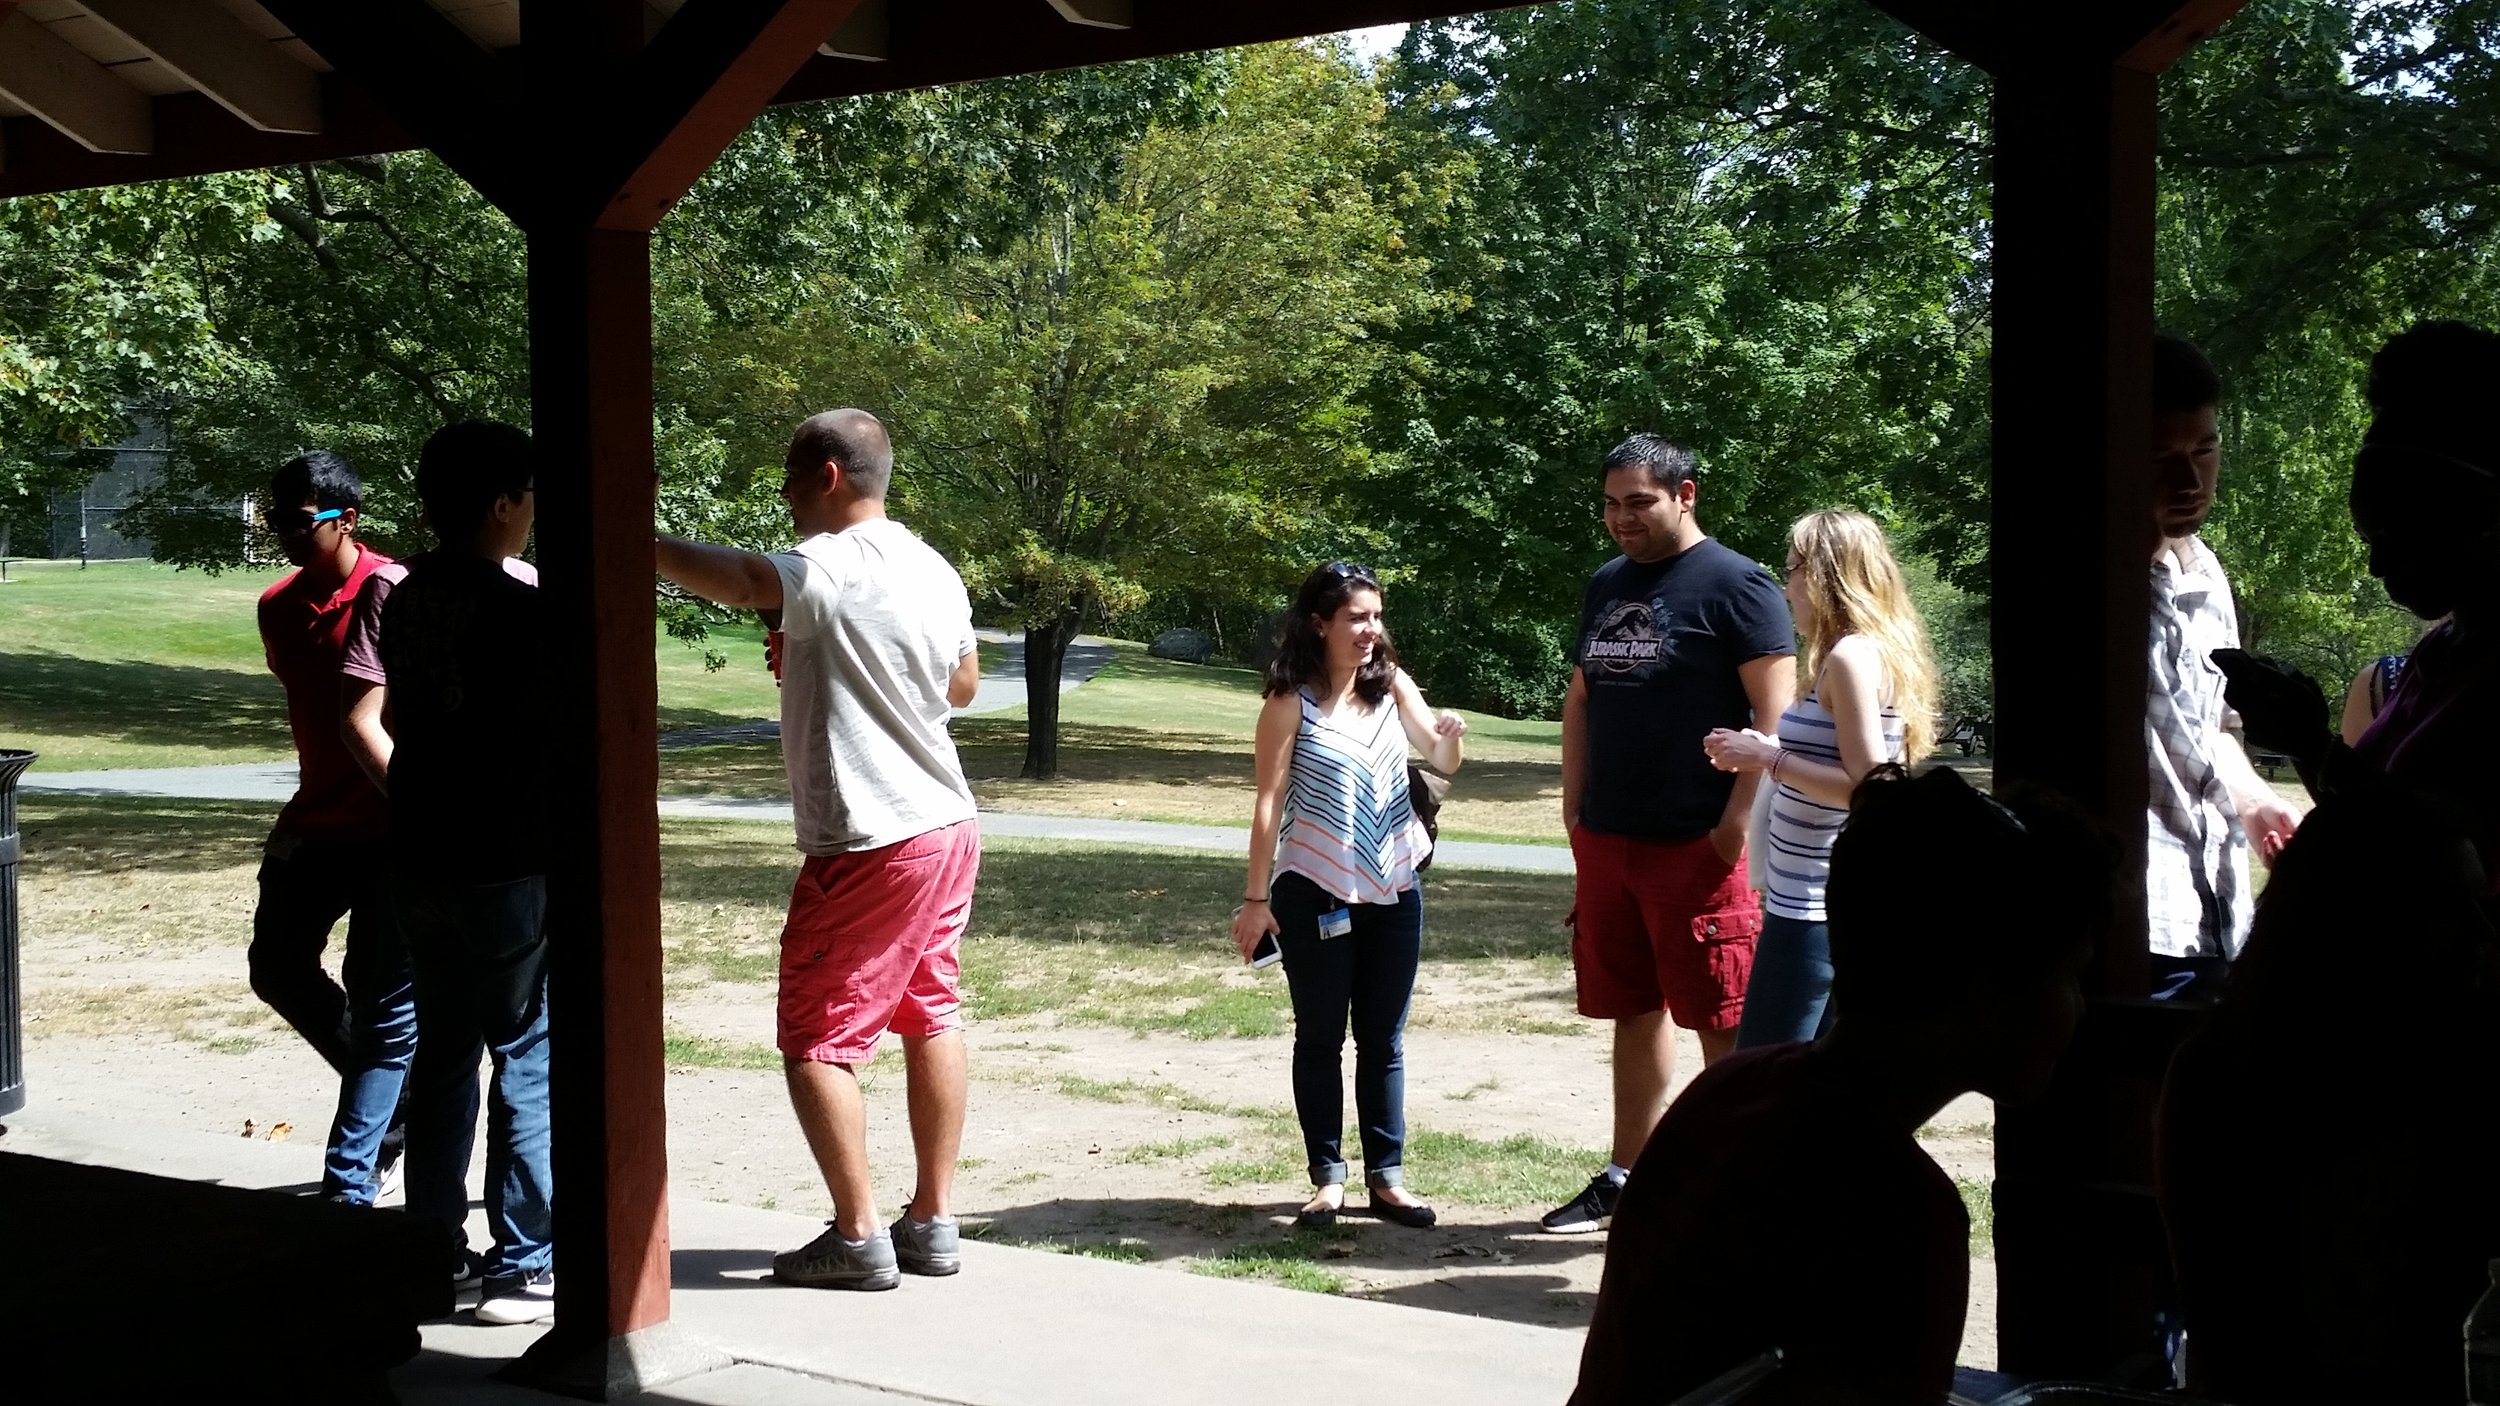 Research Assistants catch up and enjoy time outside the lab!